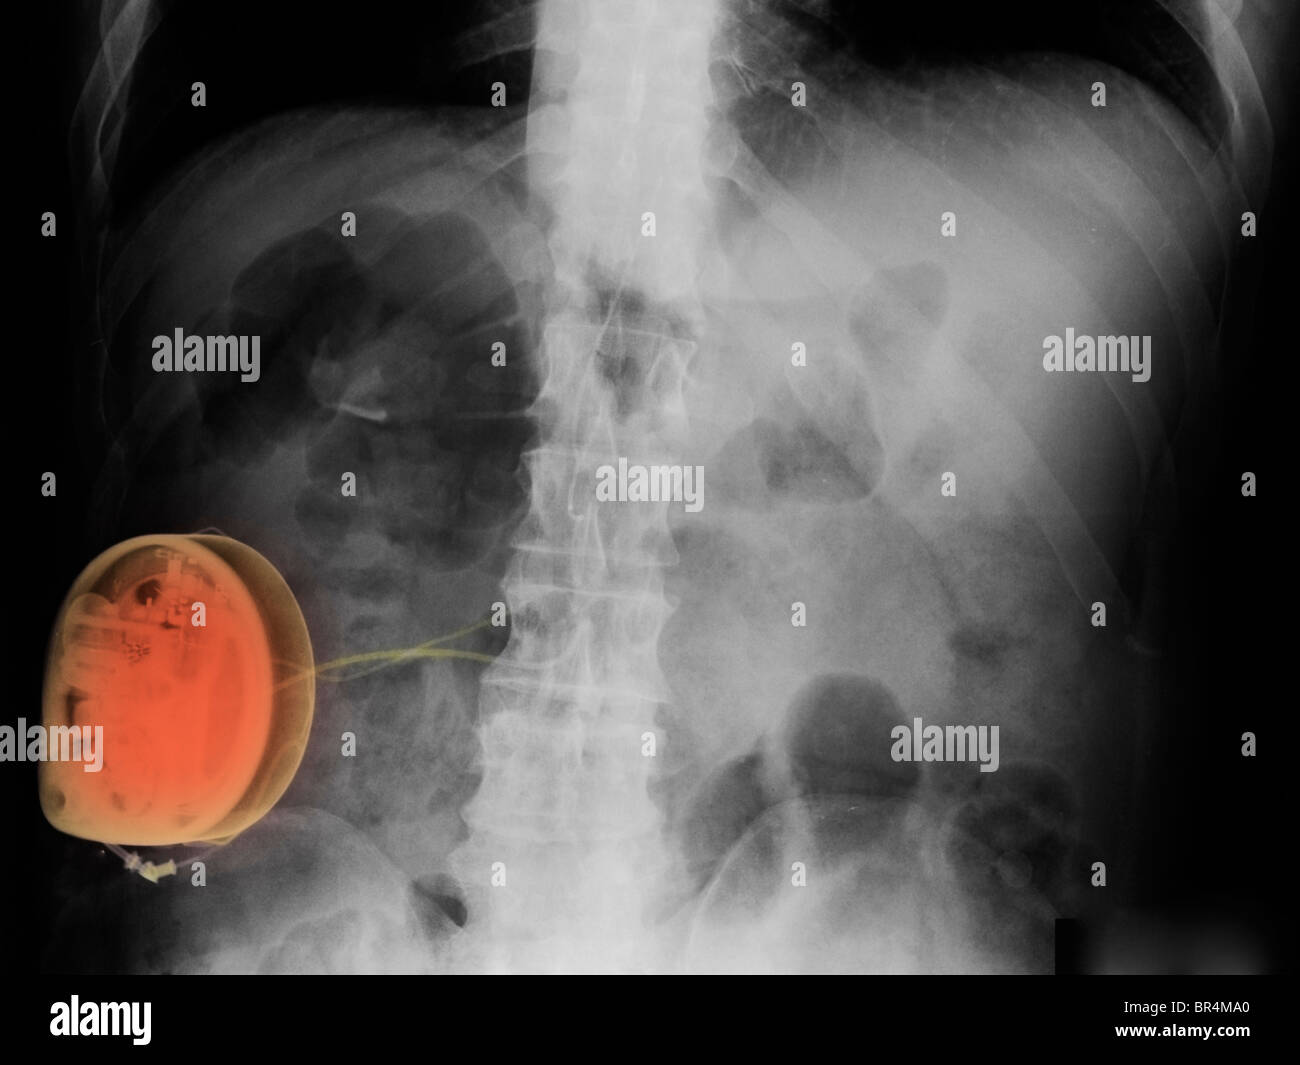 x-ray showing a spinal cord stimulator used to treat pain - Stock Image